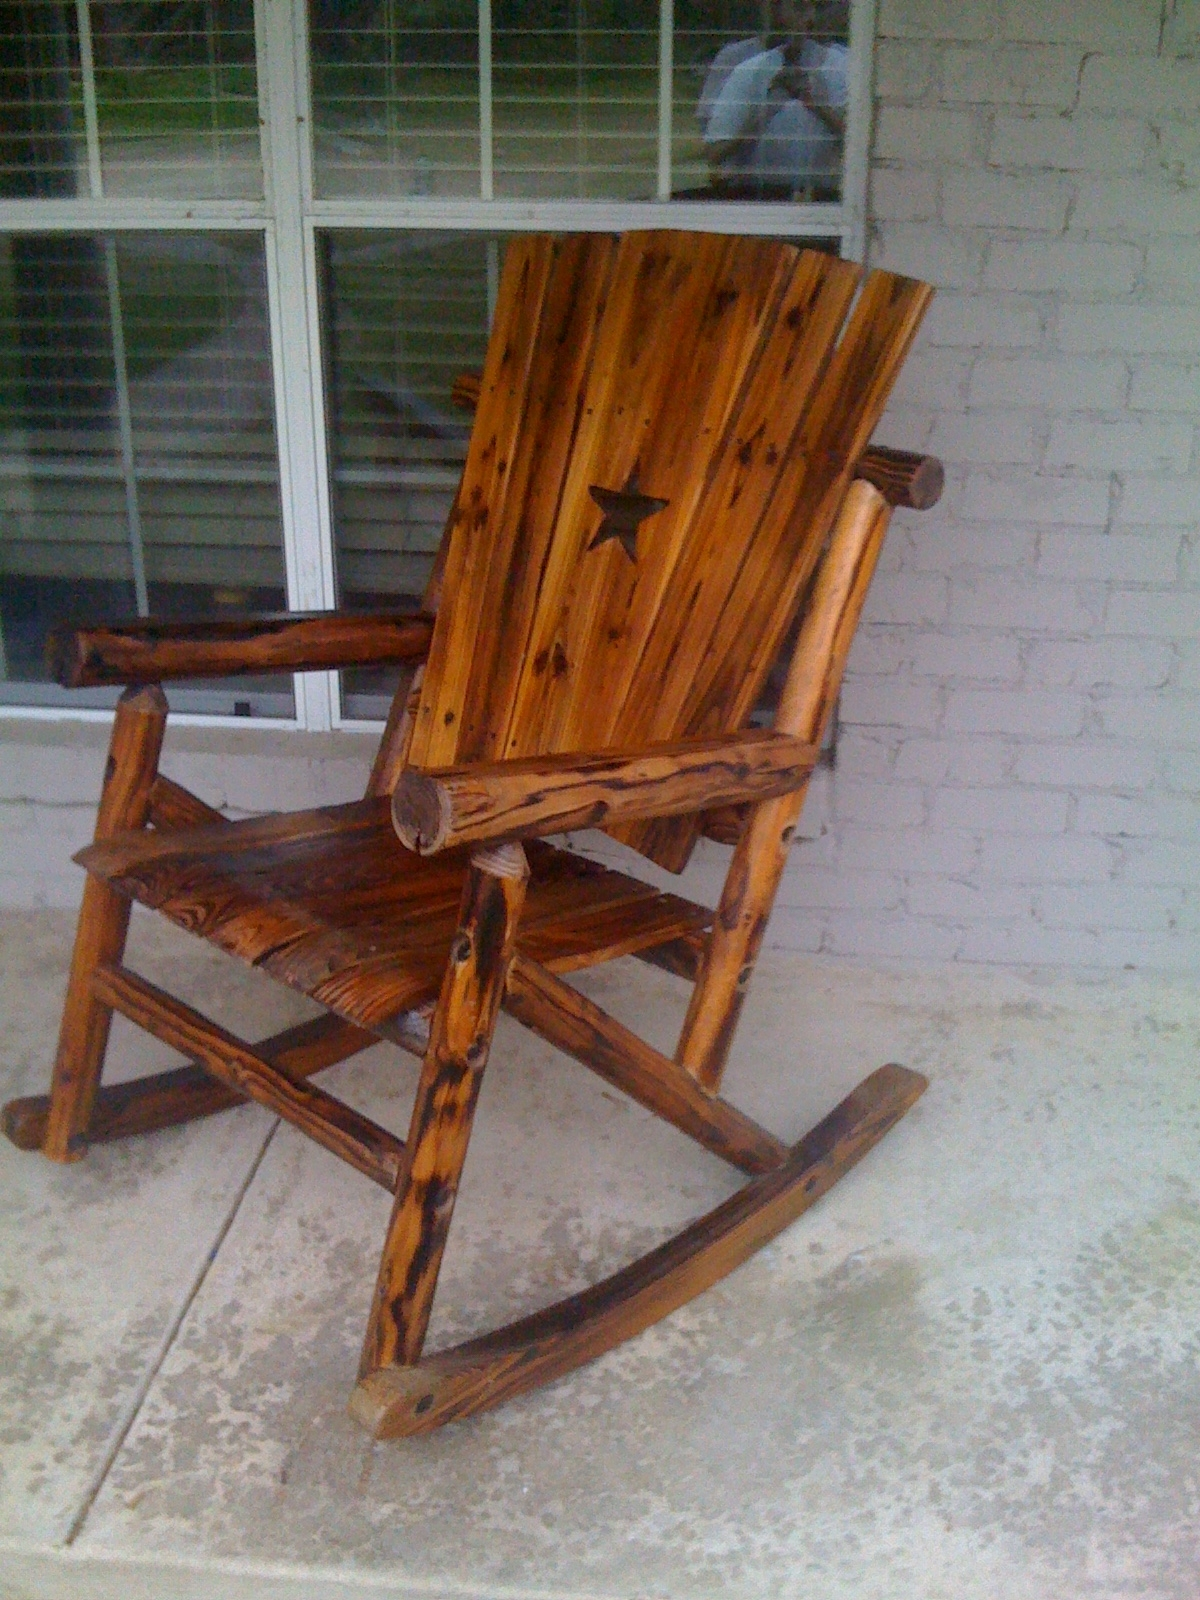 Outdoor Wooden Rocking Chairs Rustic : Pleasure Outdoor Wooden Within Rocking Chairs For Outdoors (#12 of 15)